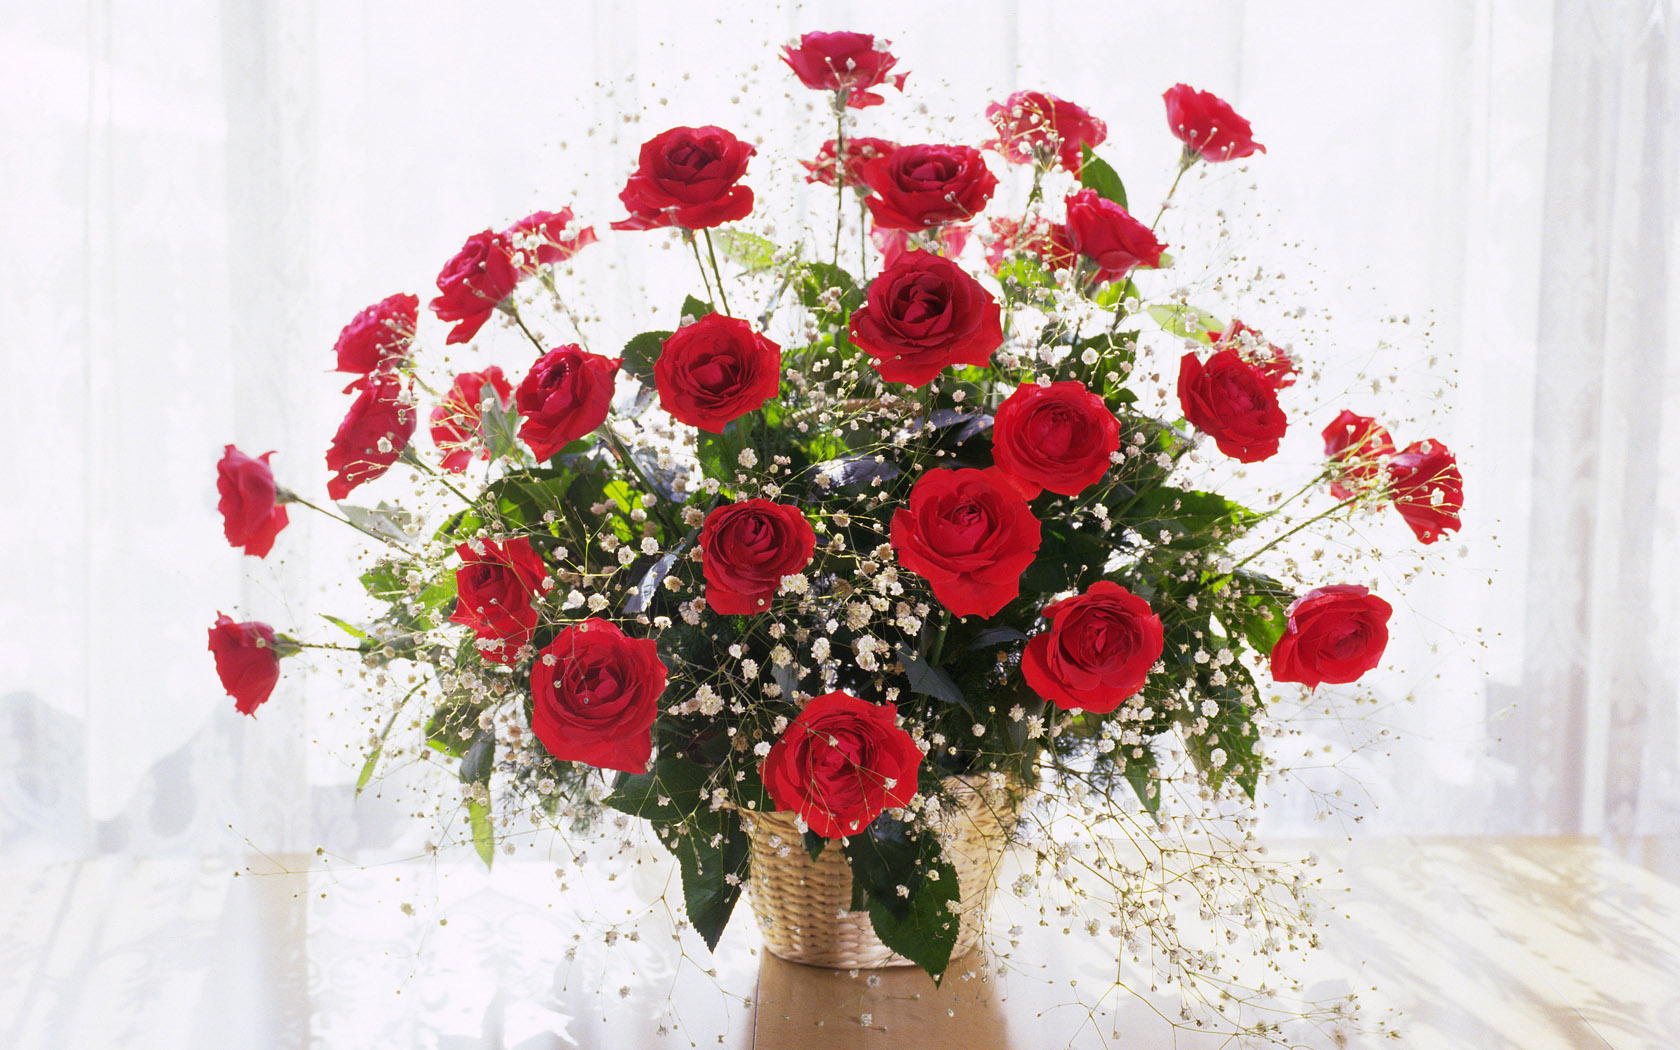 Red Abstract Bouquet Of Roses At The Window X 446343 Wallpaper wallpaper